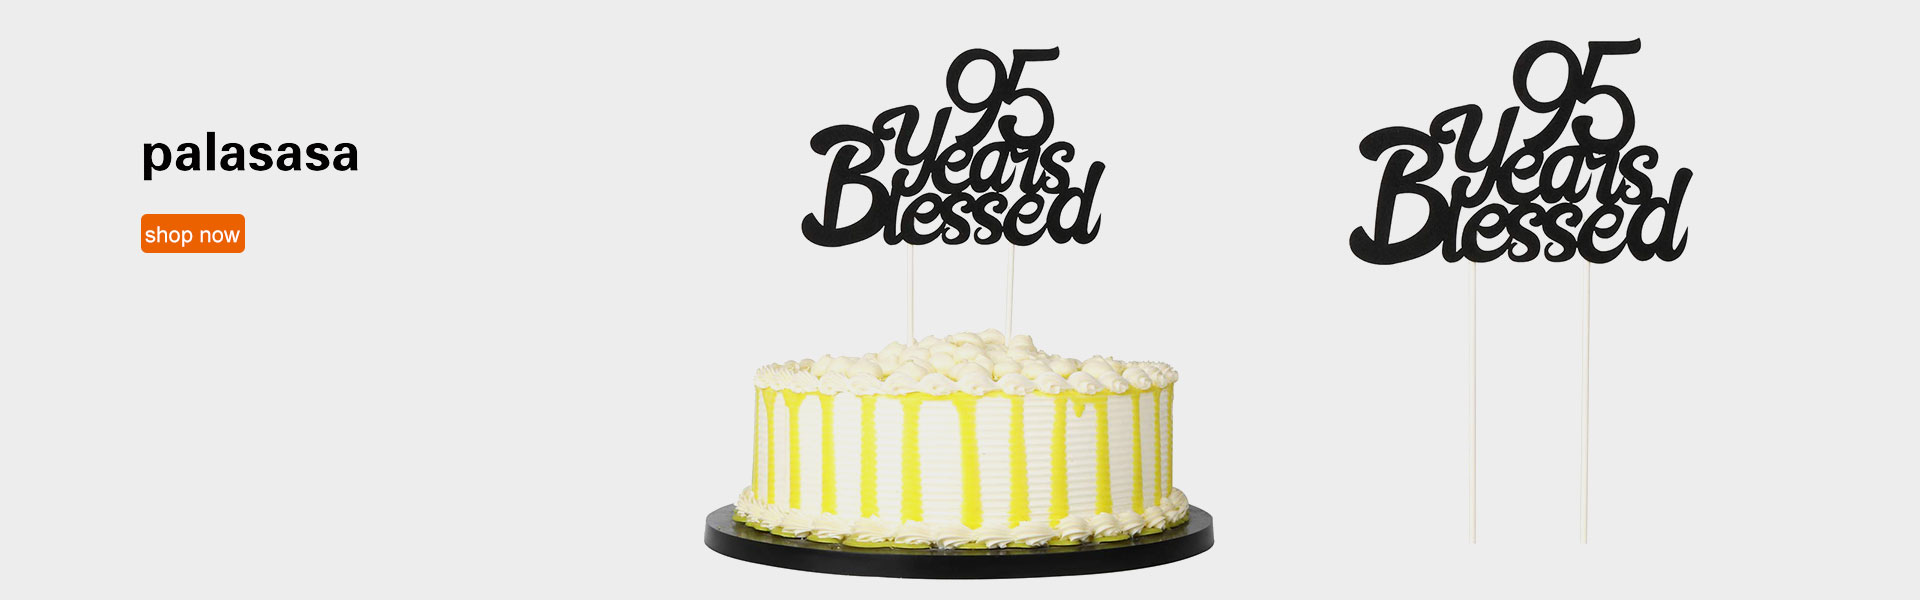 PALASASA Black Single Sided Glitter 95 Years Blessed Cake Topper - Happy 95th Birthday - Wedding Anniversary Party Decorations (95th)